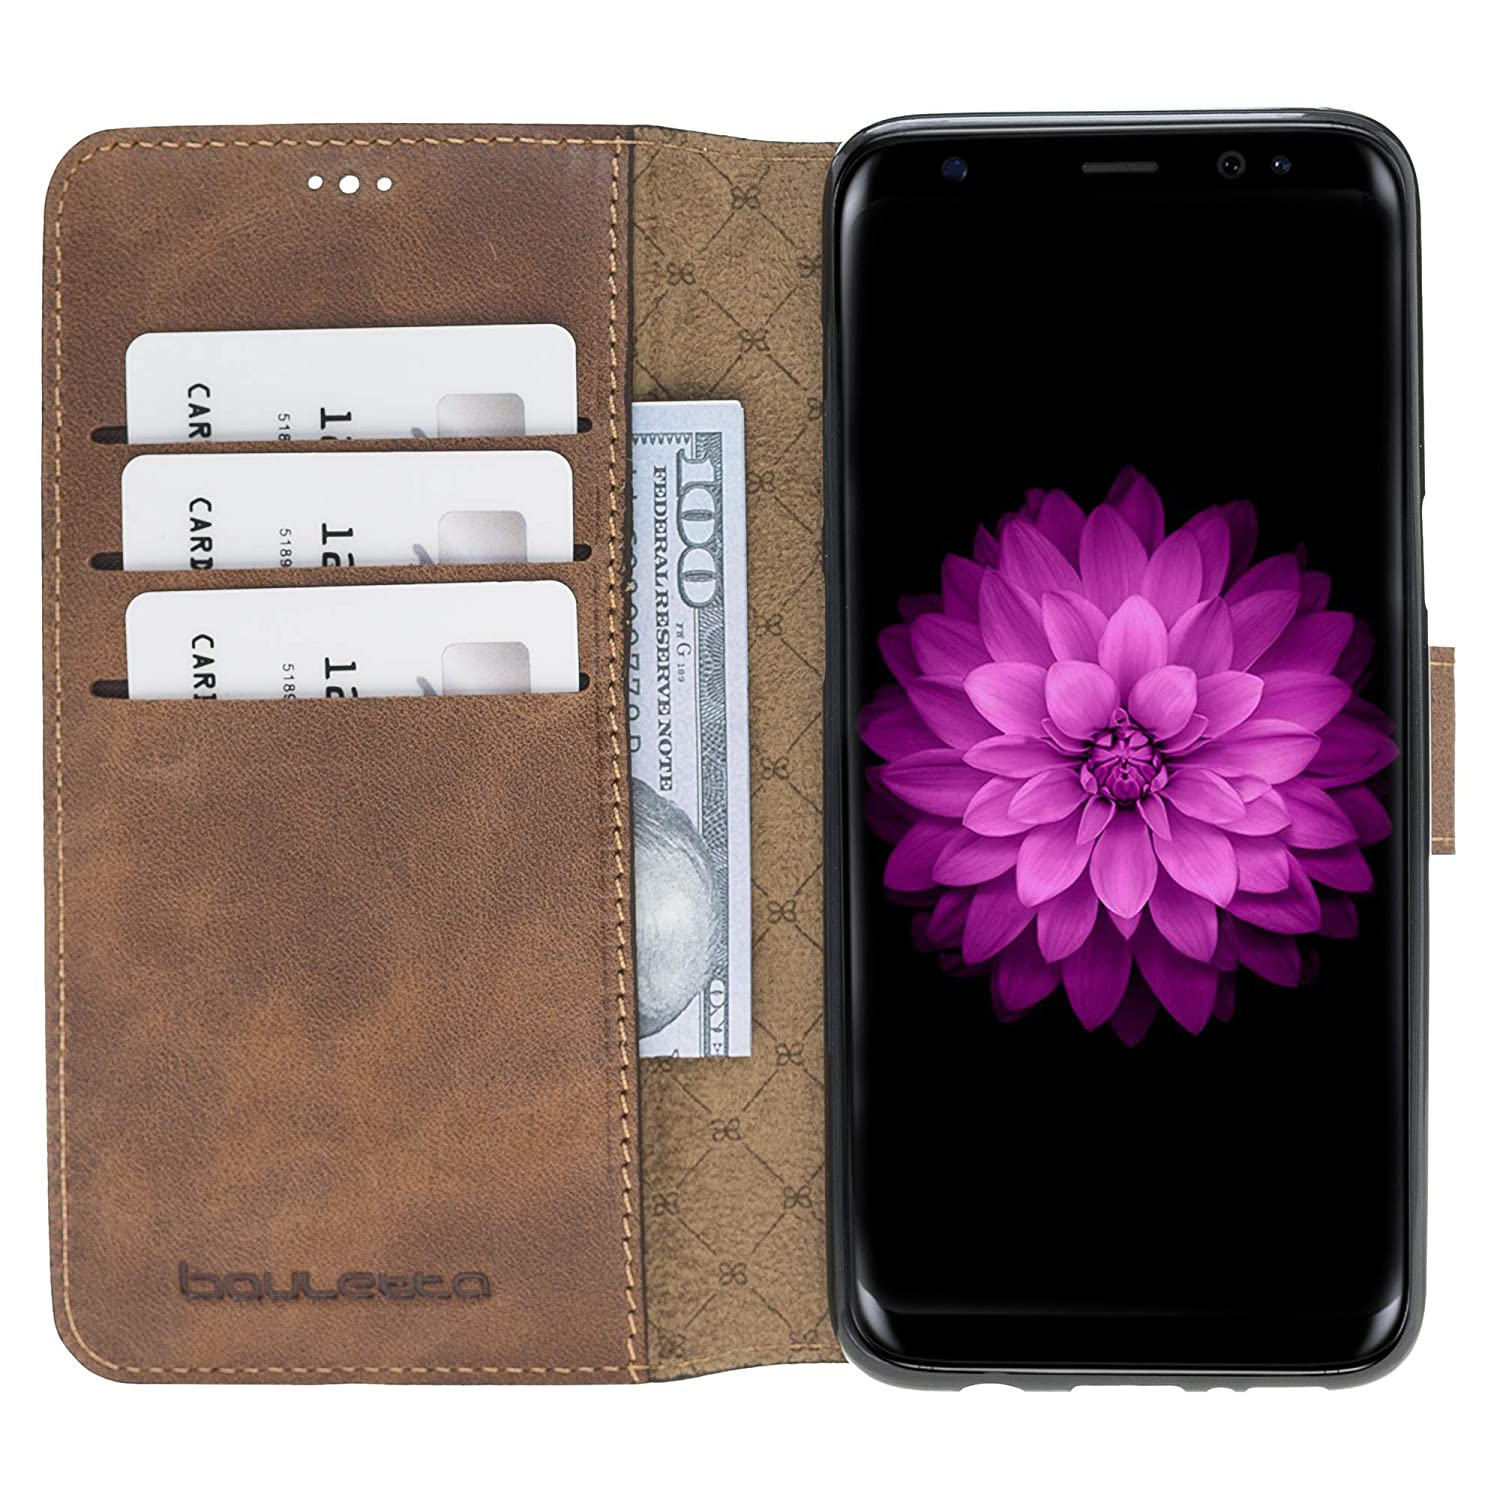 Best Cell Phone Insurance 2020 Amazon.com: Galaxy S8 Plus Cell Phone Case – Genuine Leather Case